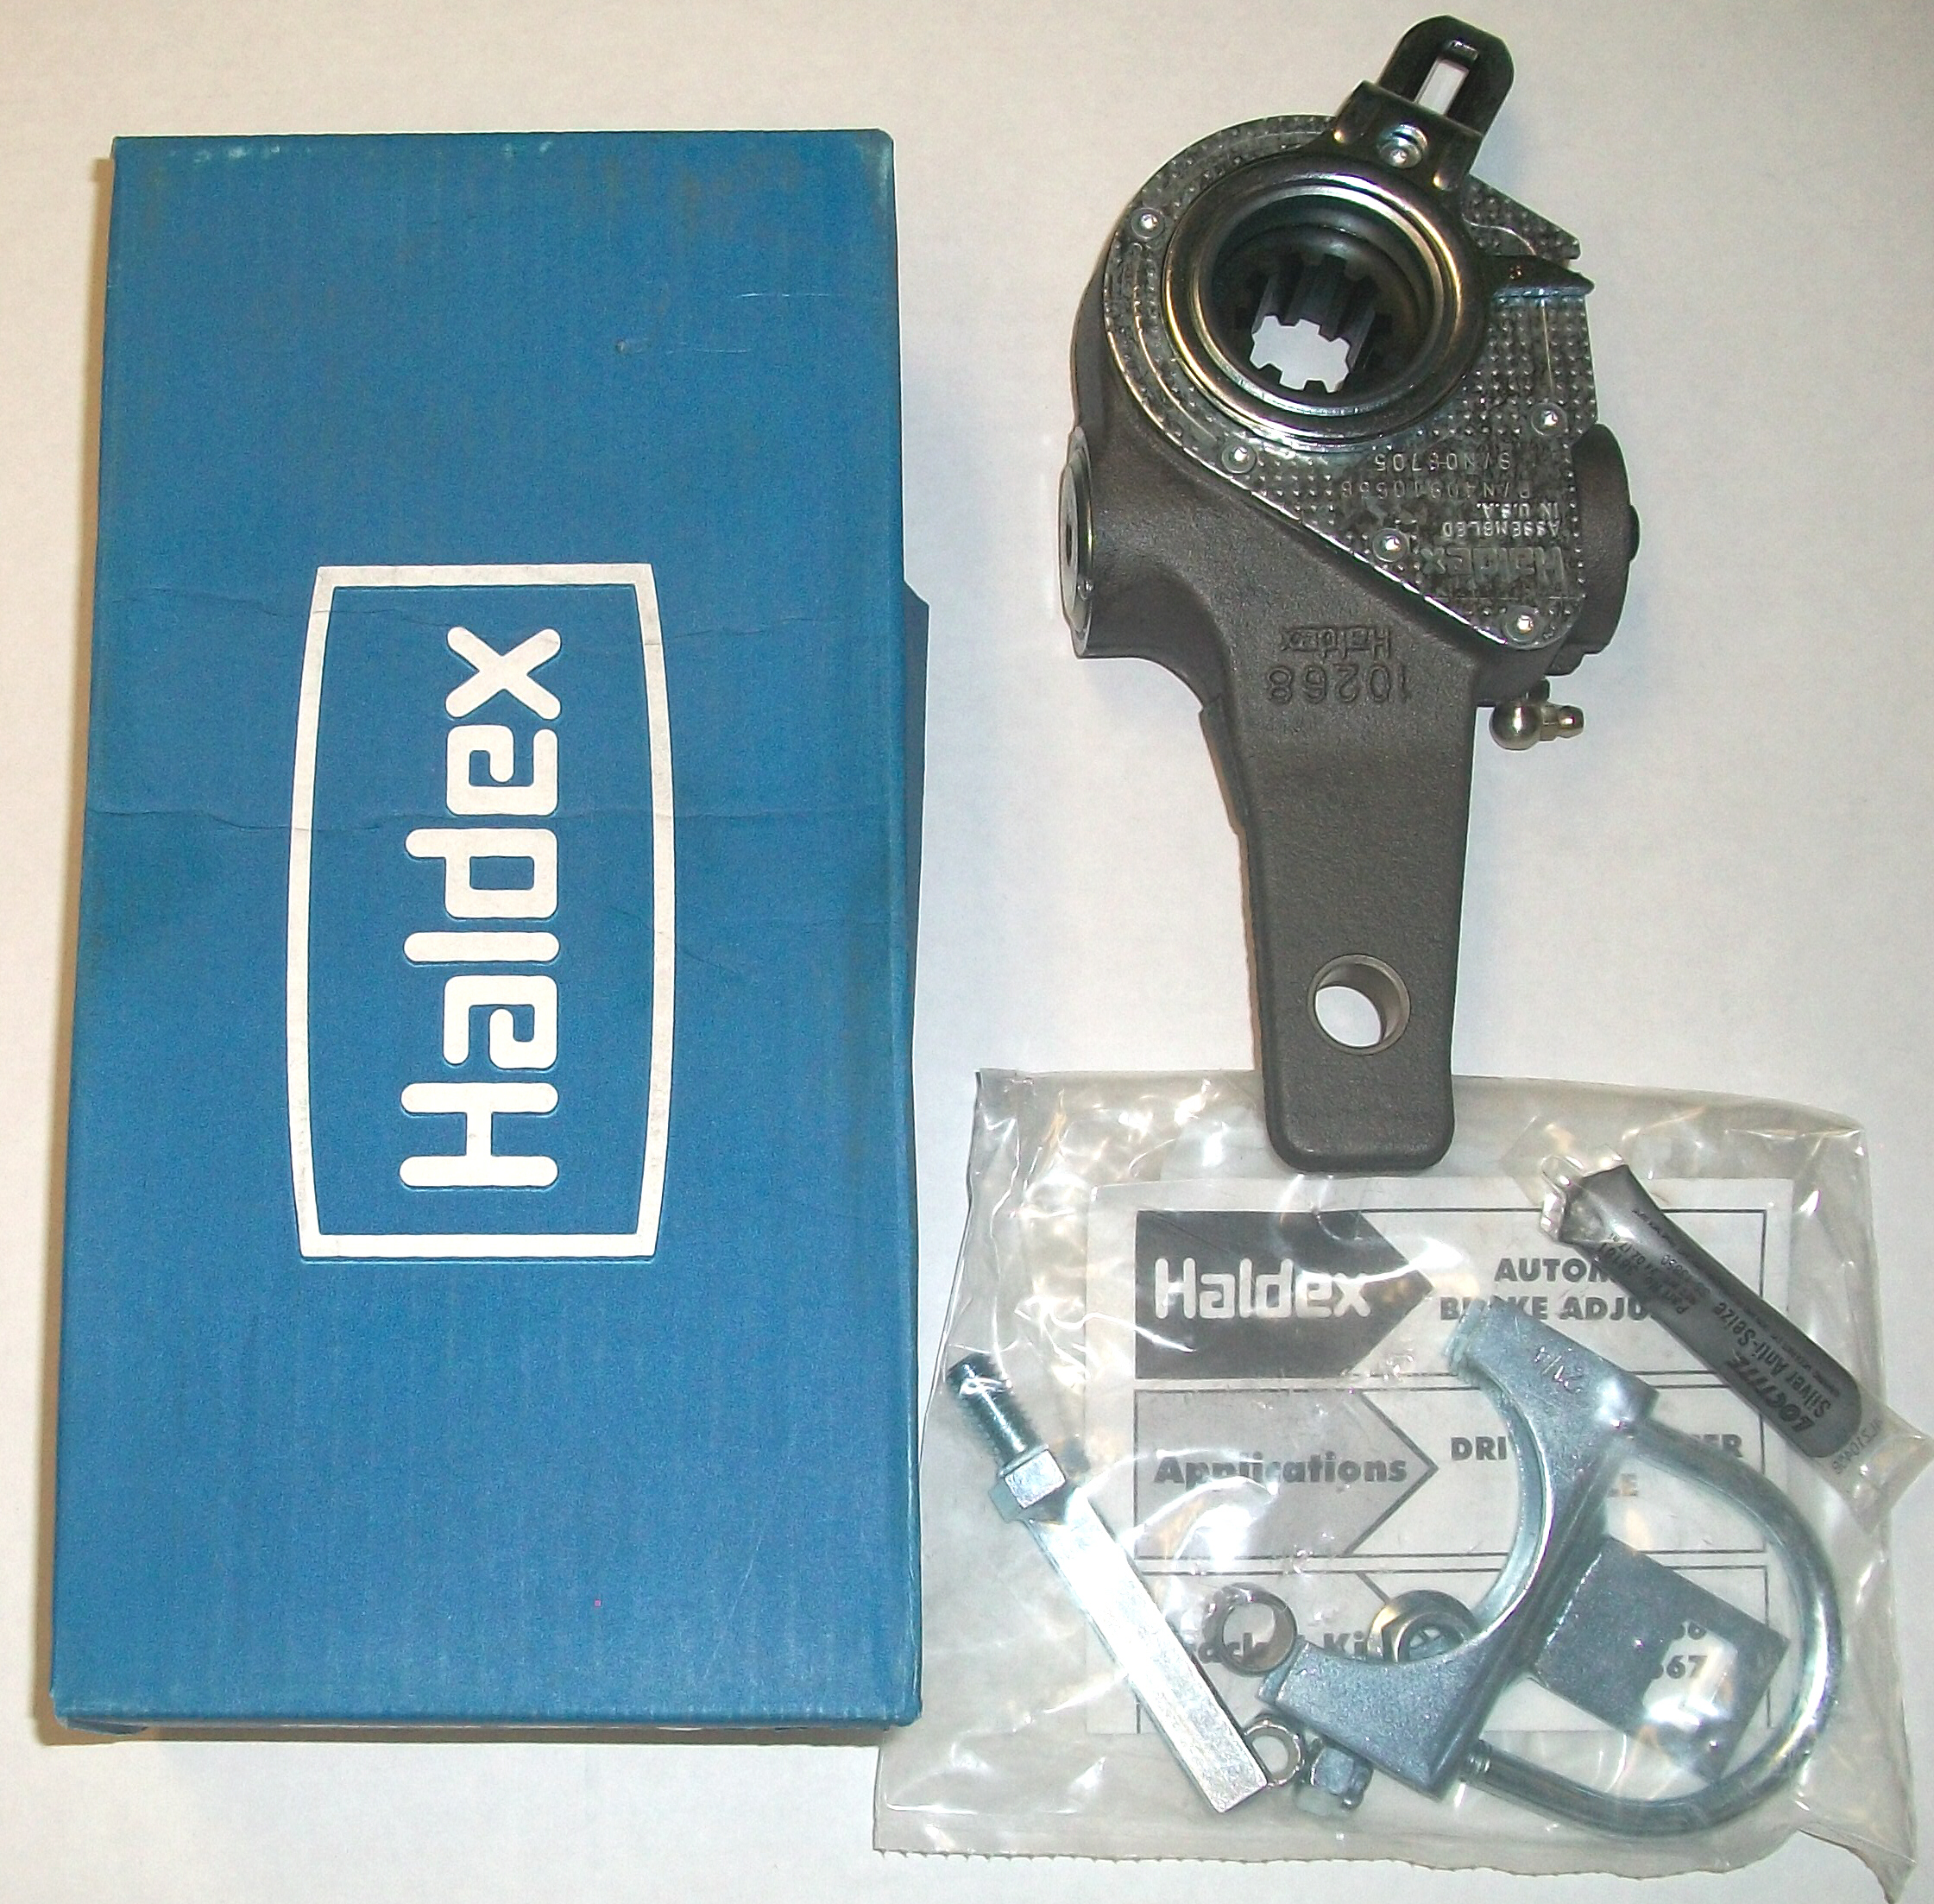 400-10001 Haldex Slack Adjuster Surplus Truck Parts